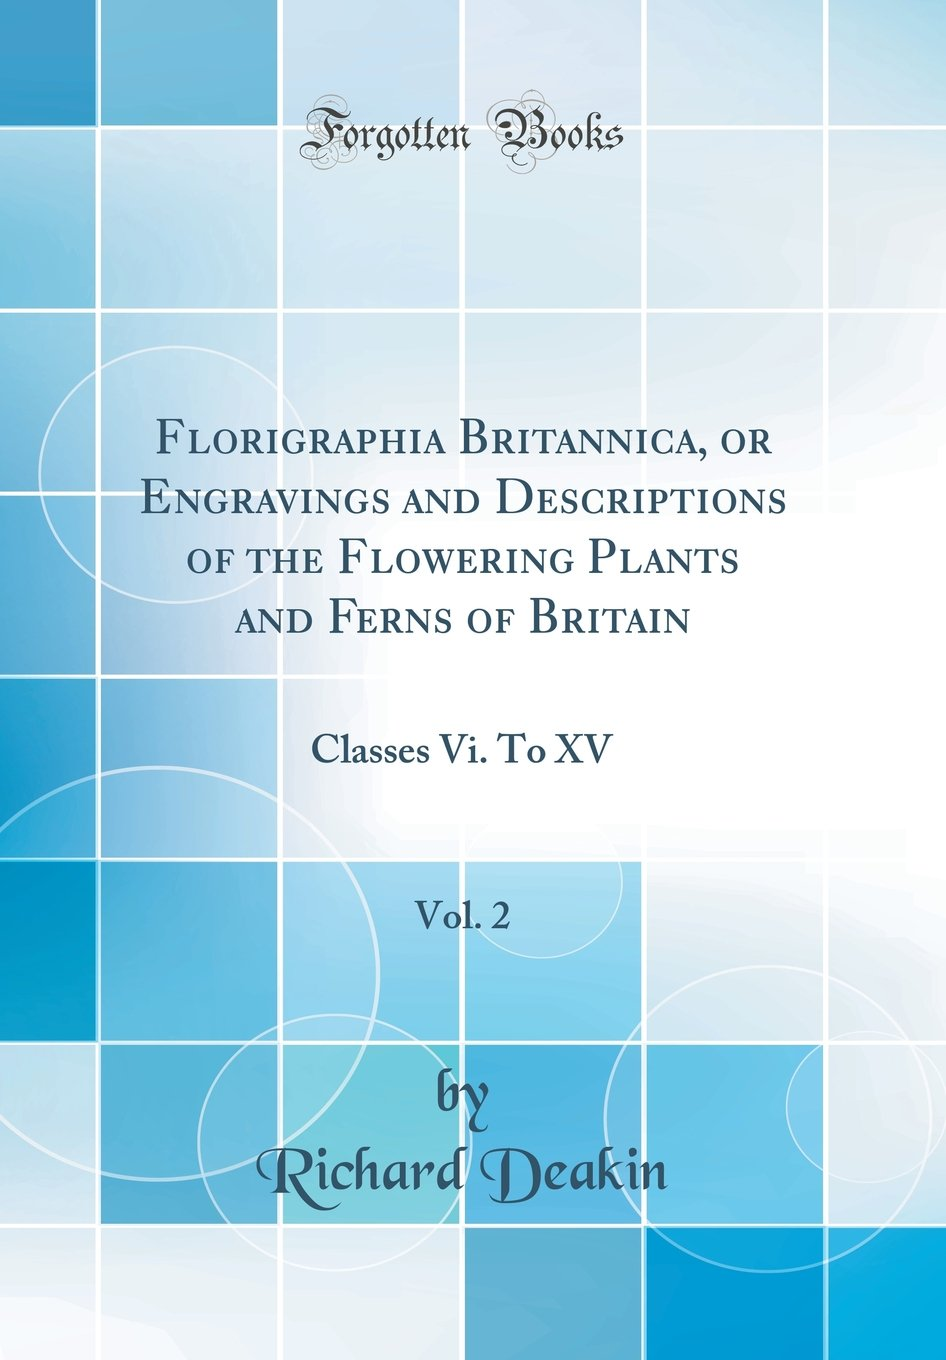 Download Florigraphia Britannica, or Engravings and Descriptions of the Flowering Plants and Ferns of Britain, Vol. 2: Classes Vi. To XV (Classic Reprint) PDF